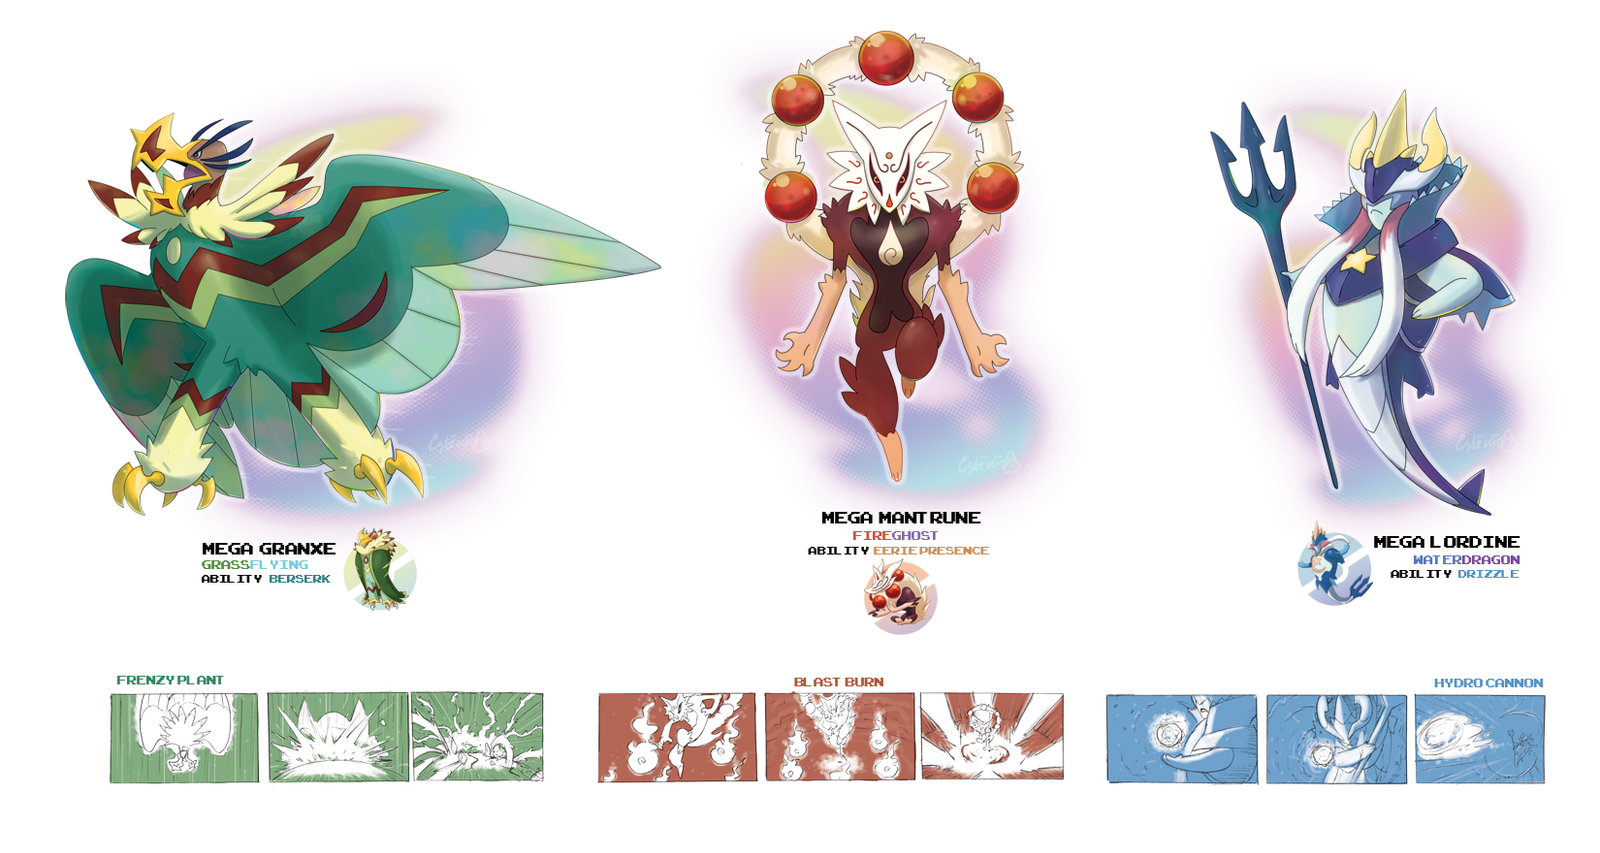 Starter Pokemon All Mega Evolutions Images | Pokemon Images